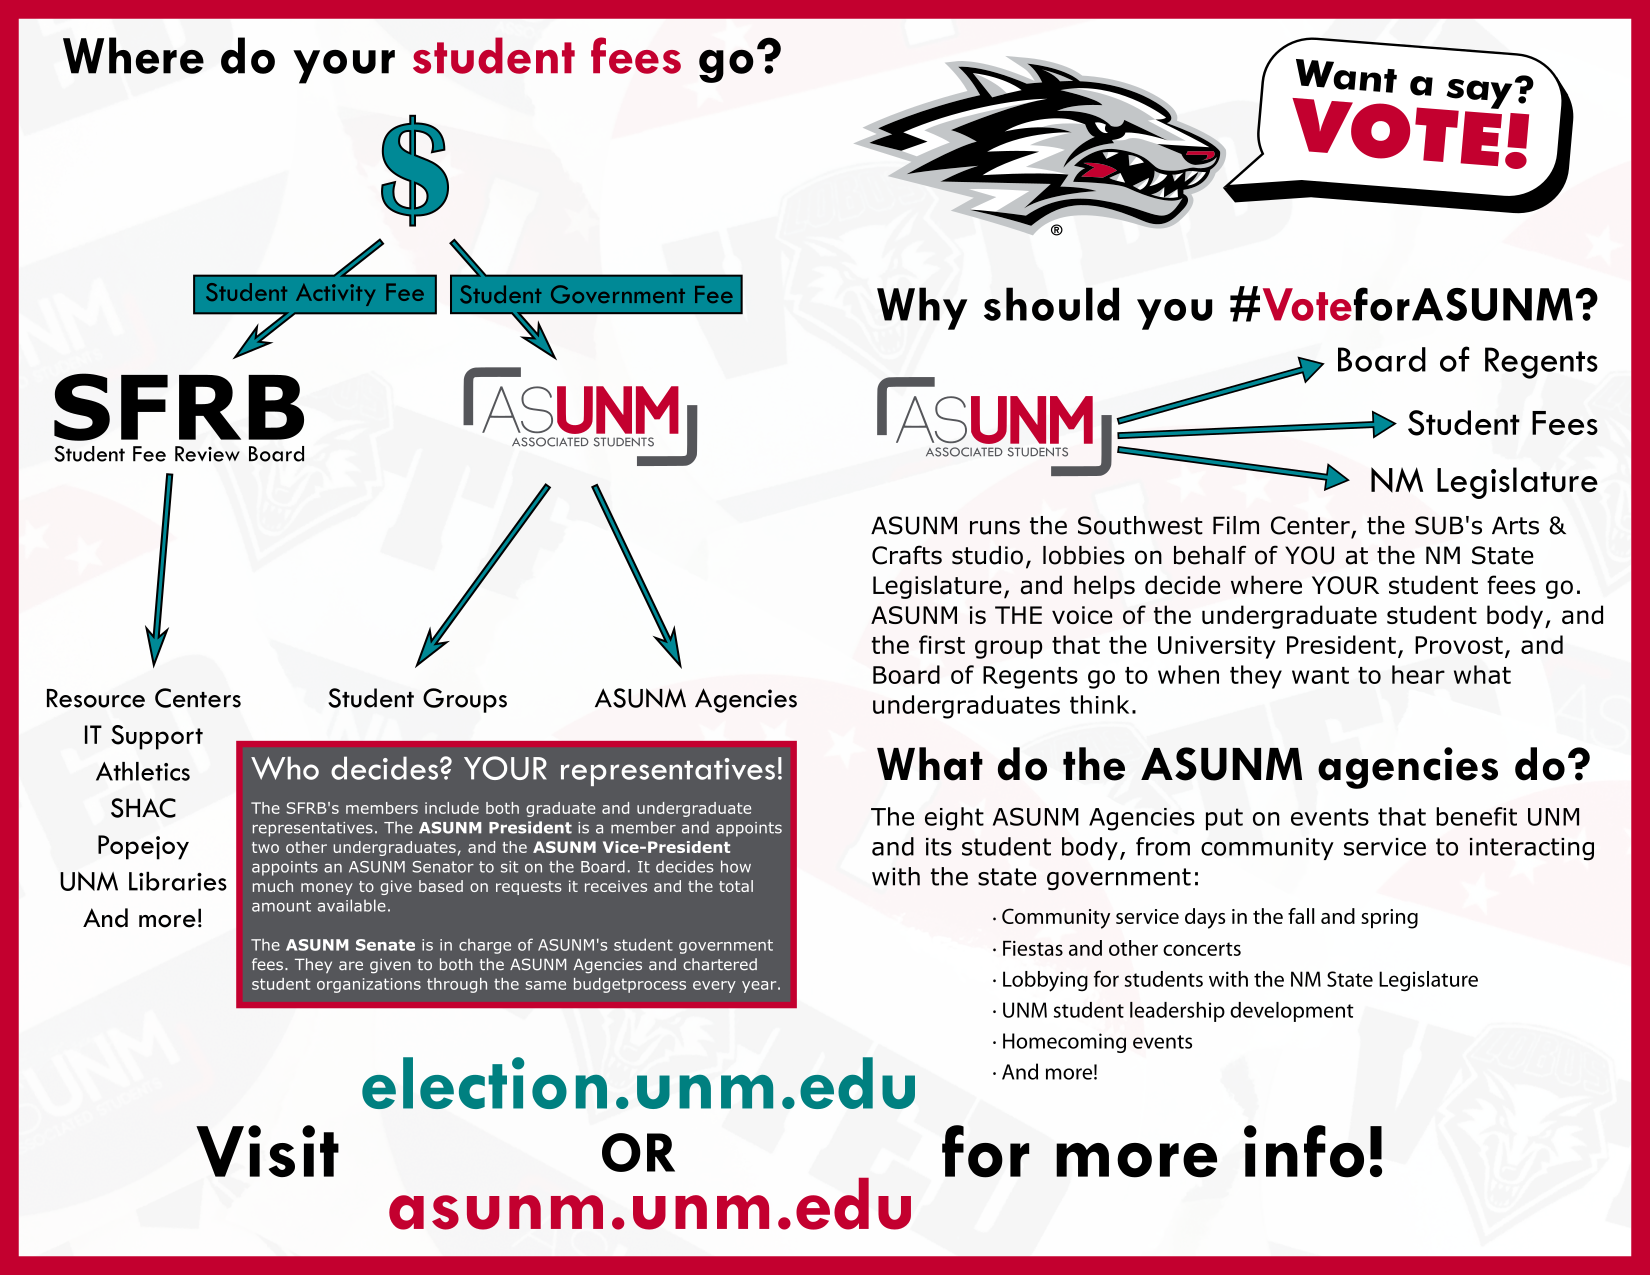 ASUNM Does All This, So You Should #VoteforASUNM